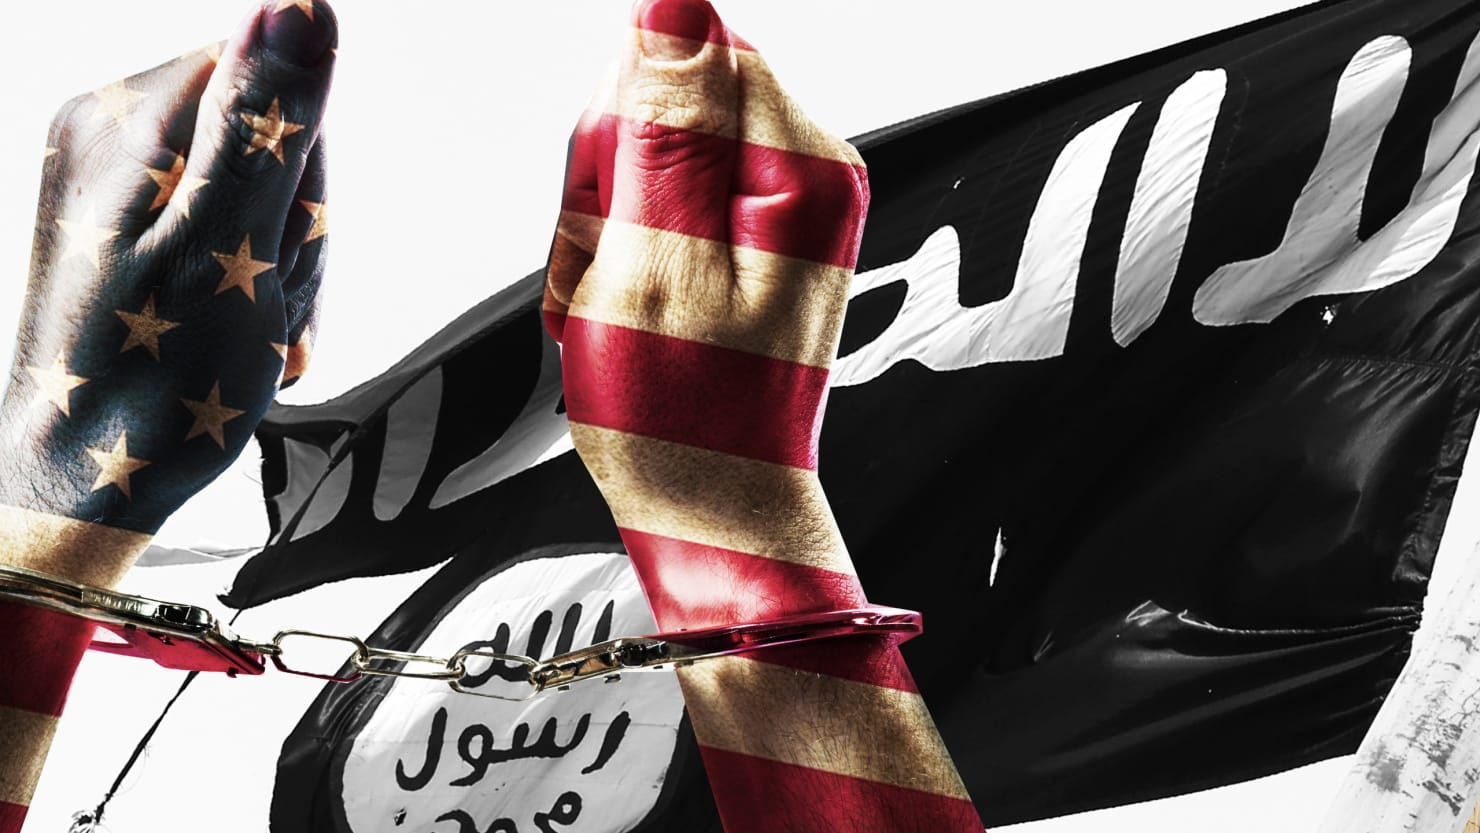 A Captured American ISIS Fighter Could Undermine the Whole War